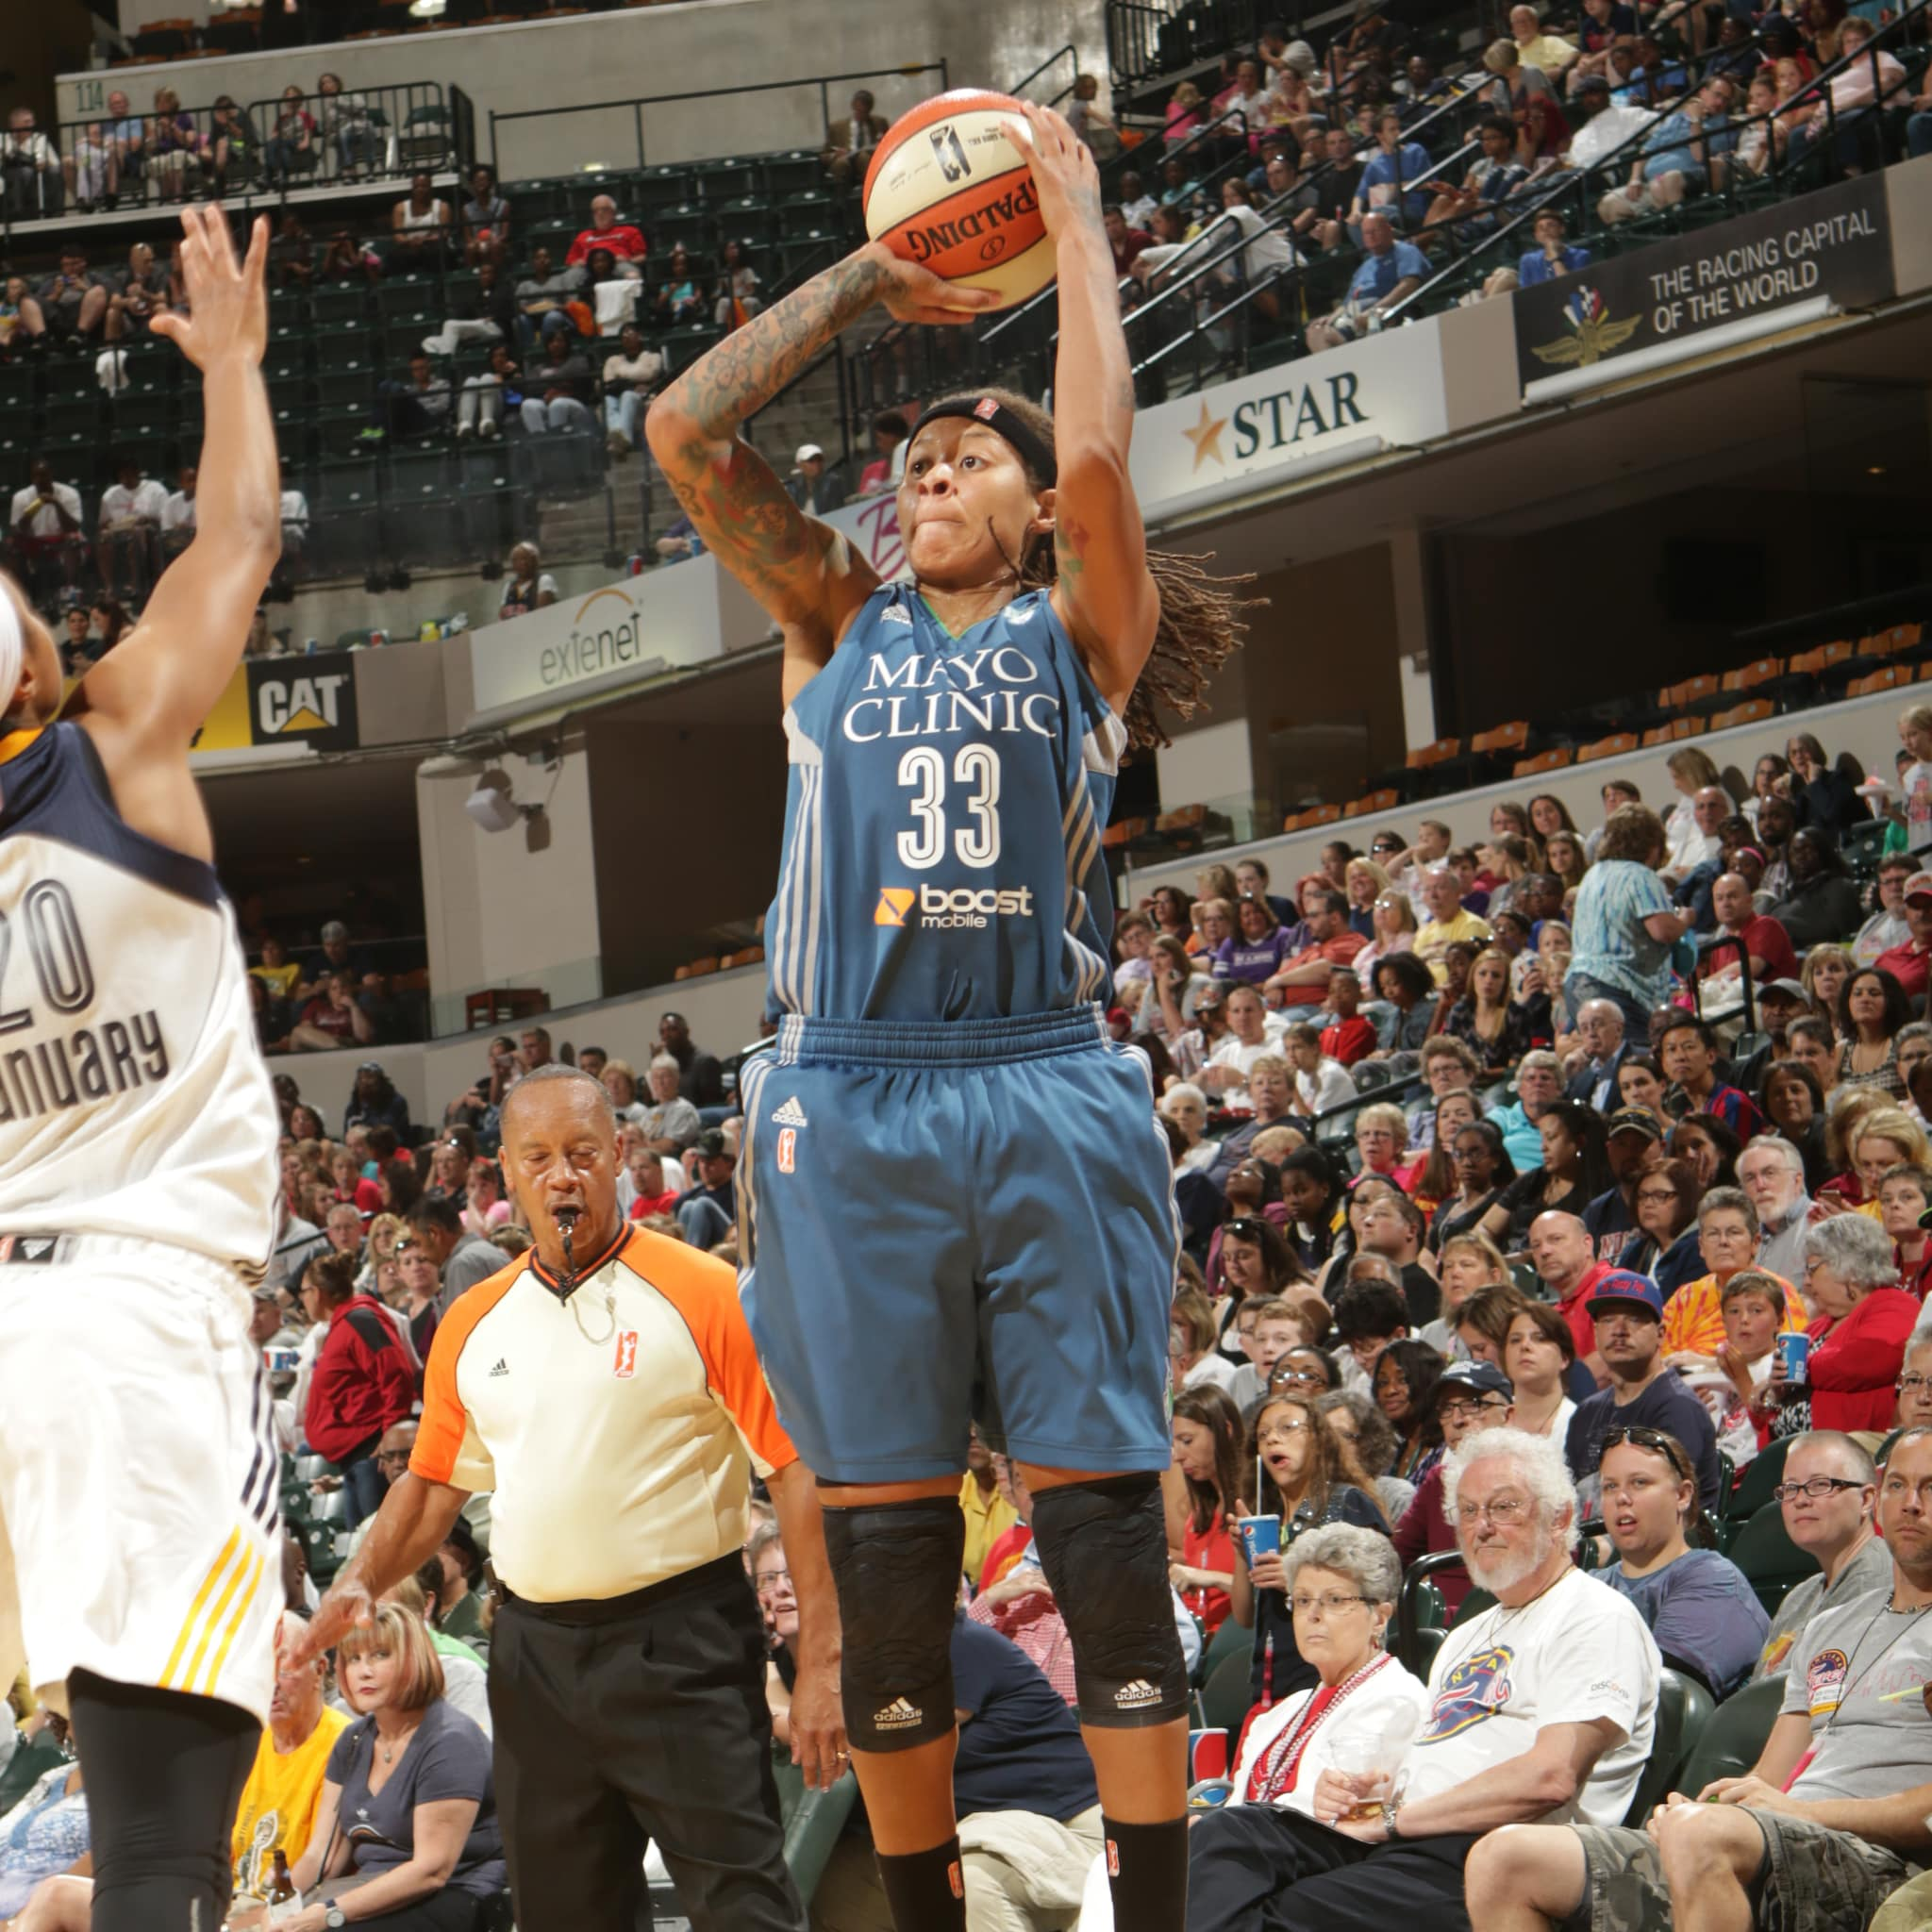 Lynx guard Seimone Augustus scored 11 points and grabbed three rebounds in the Lynx victory.